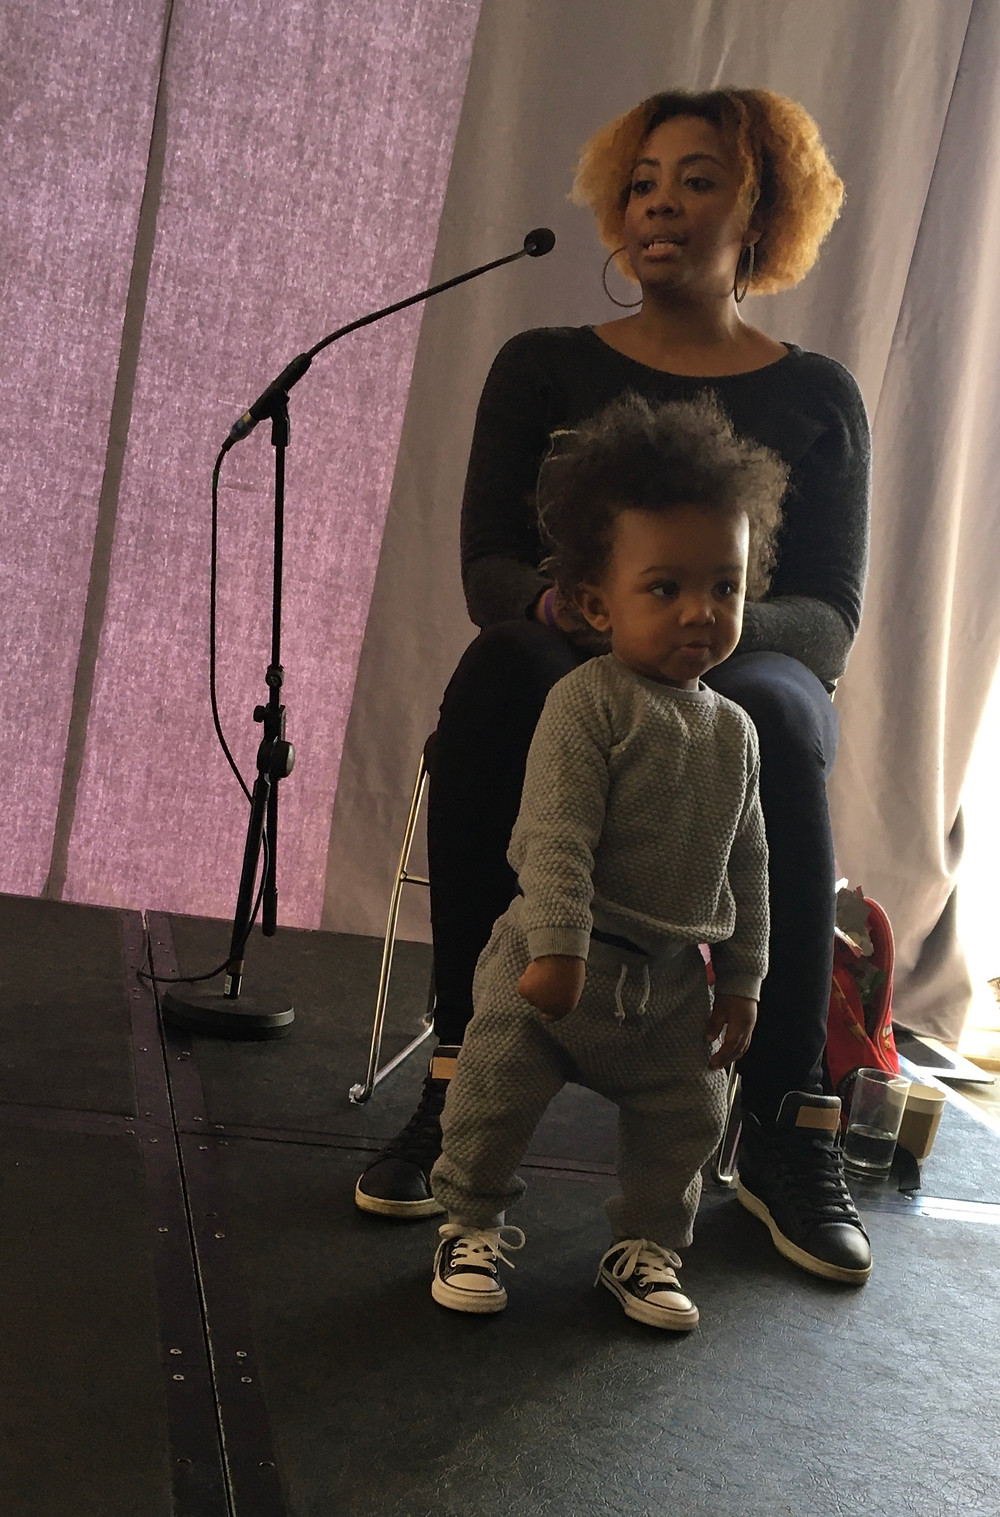 Jendella Benson in a chair with her one-year-old son standing in front of her smiling